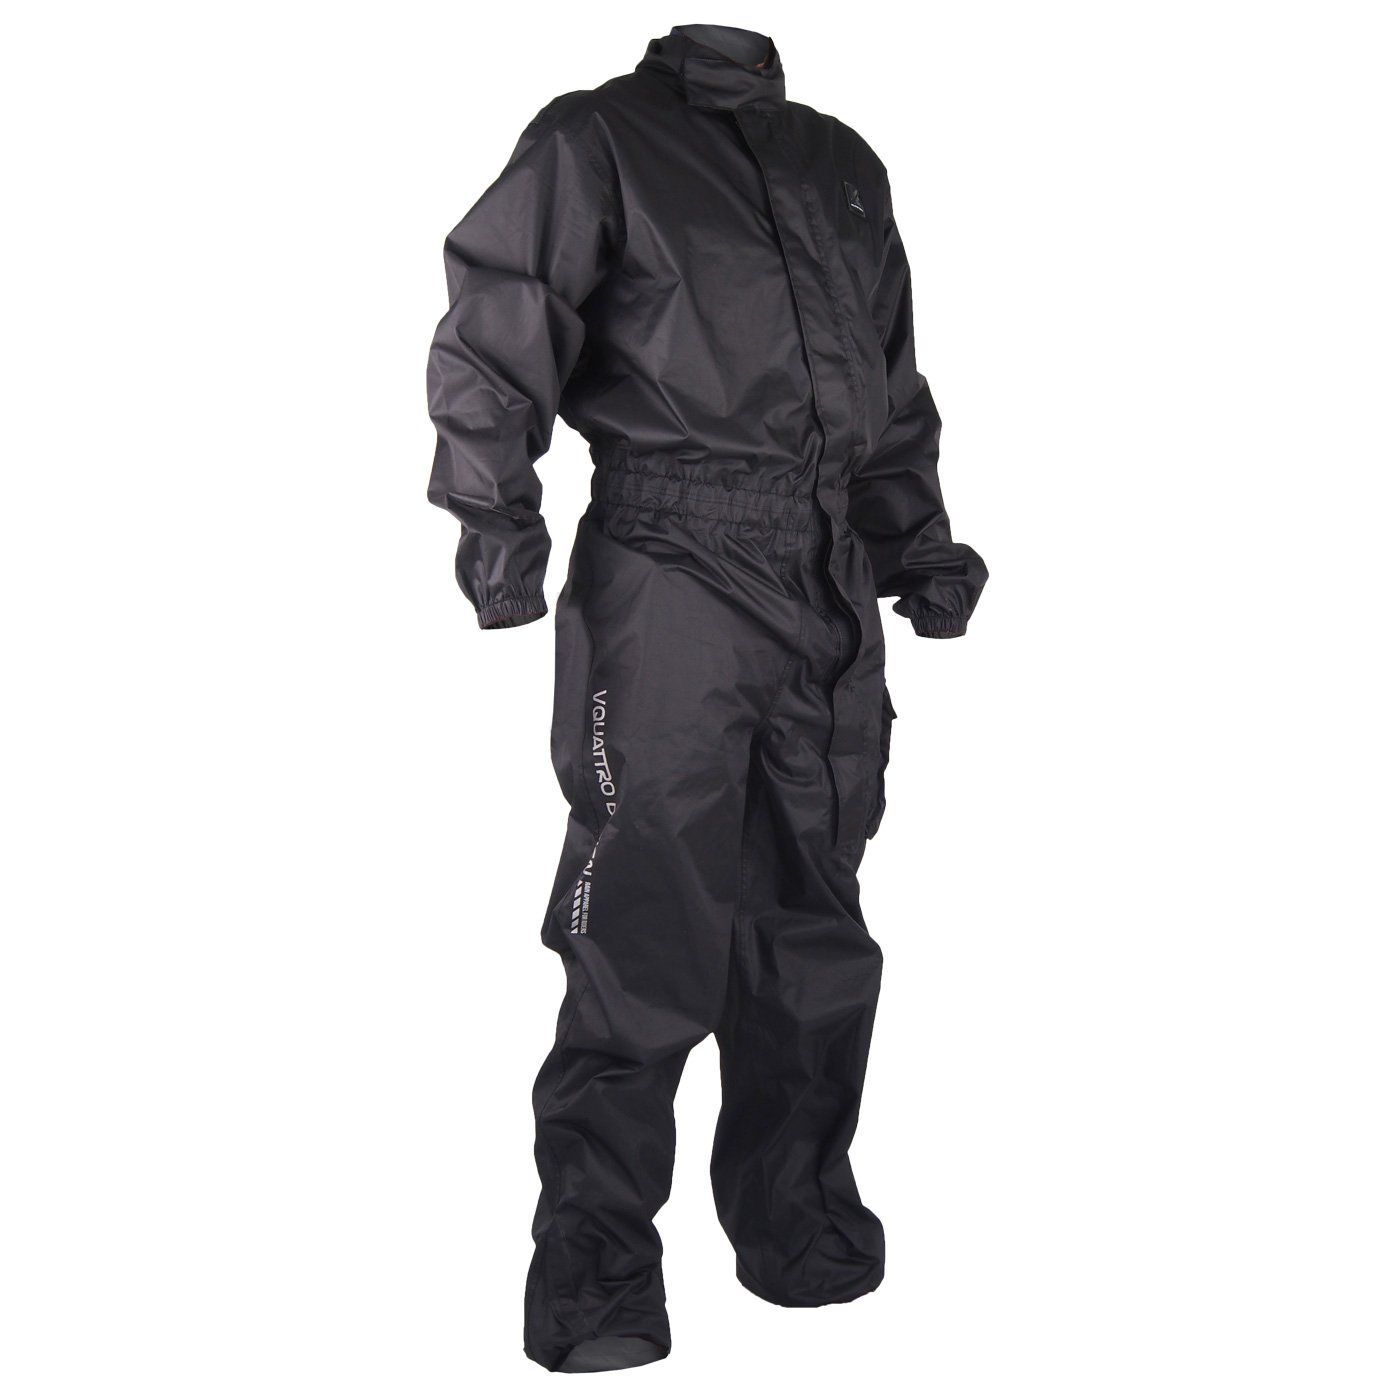 V Quattro Design Traje impermeable de motorista para hombre, color negro, XS Rider Valley Aixstream V4R-TAR-BKXS